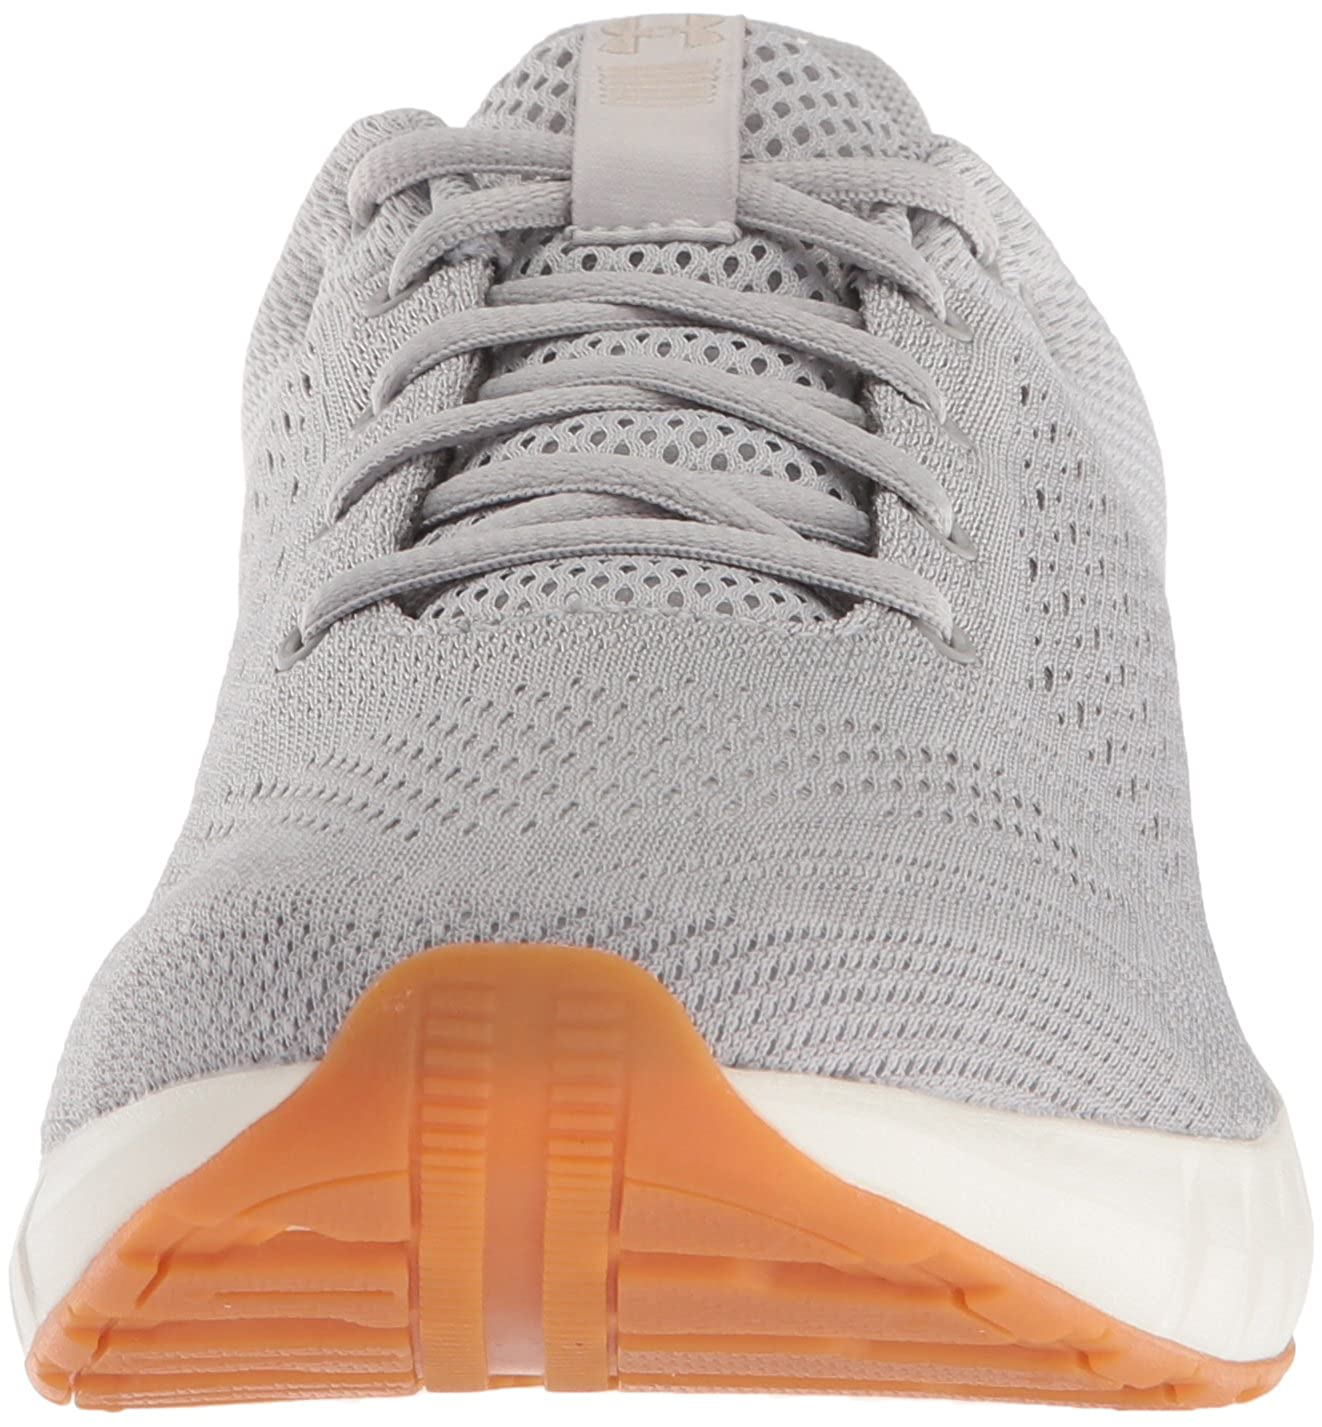 109 Ghost Gray //Ivory 8.5 M Under Armour Womens Micro G Pursuit Running Shoe